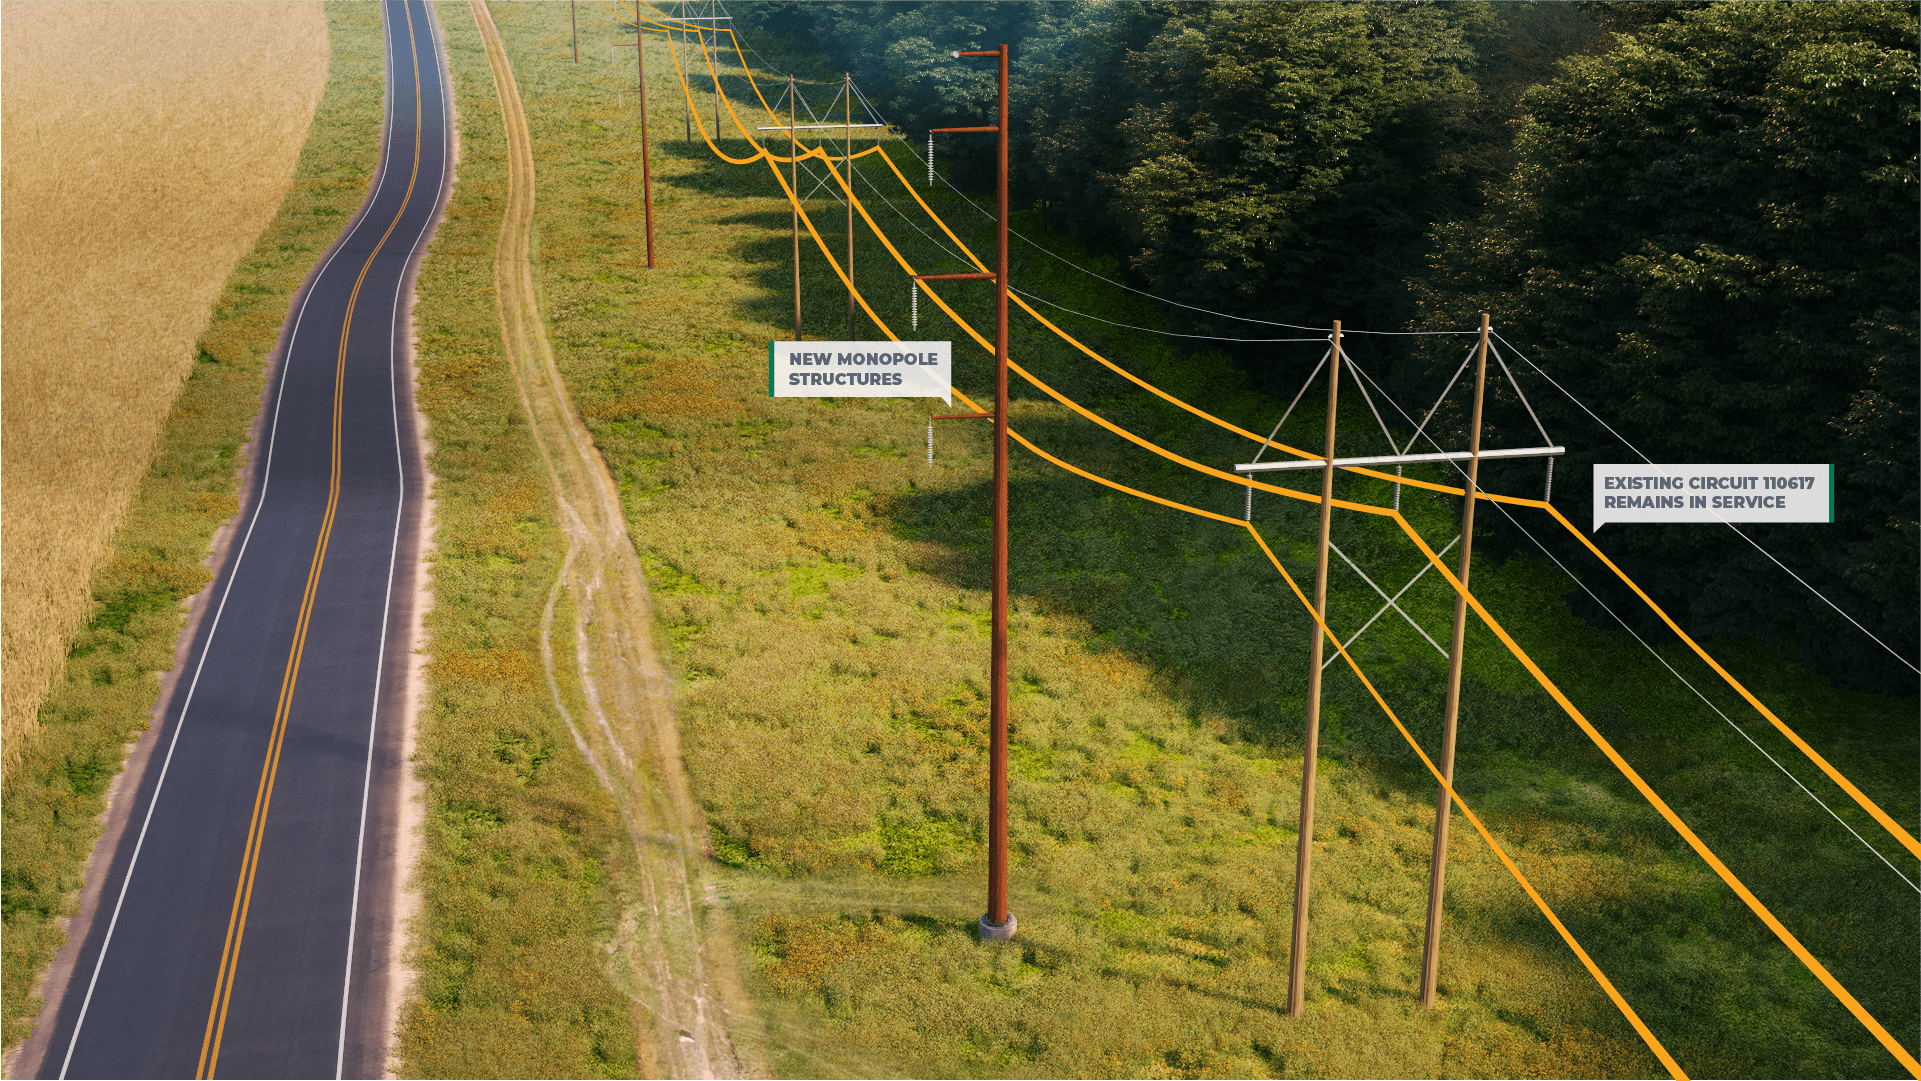 <h2>Step 2: Foundation and Structure Installation</h2>De-energize and remove existing circuit 110618. Install proposed foundations and structures. Existing circuit 110617 remains in service.